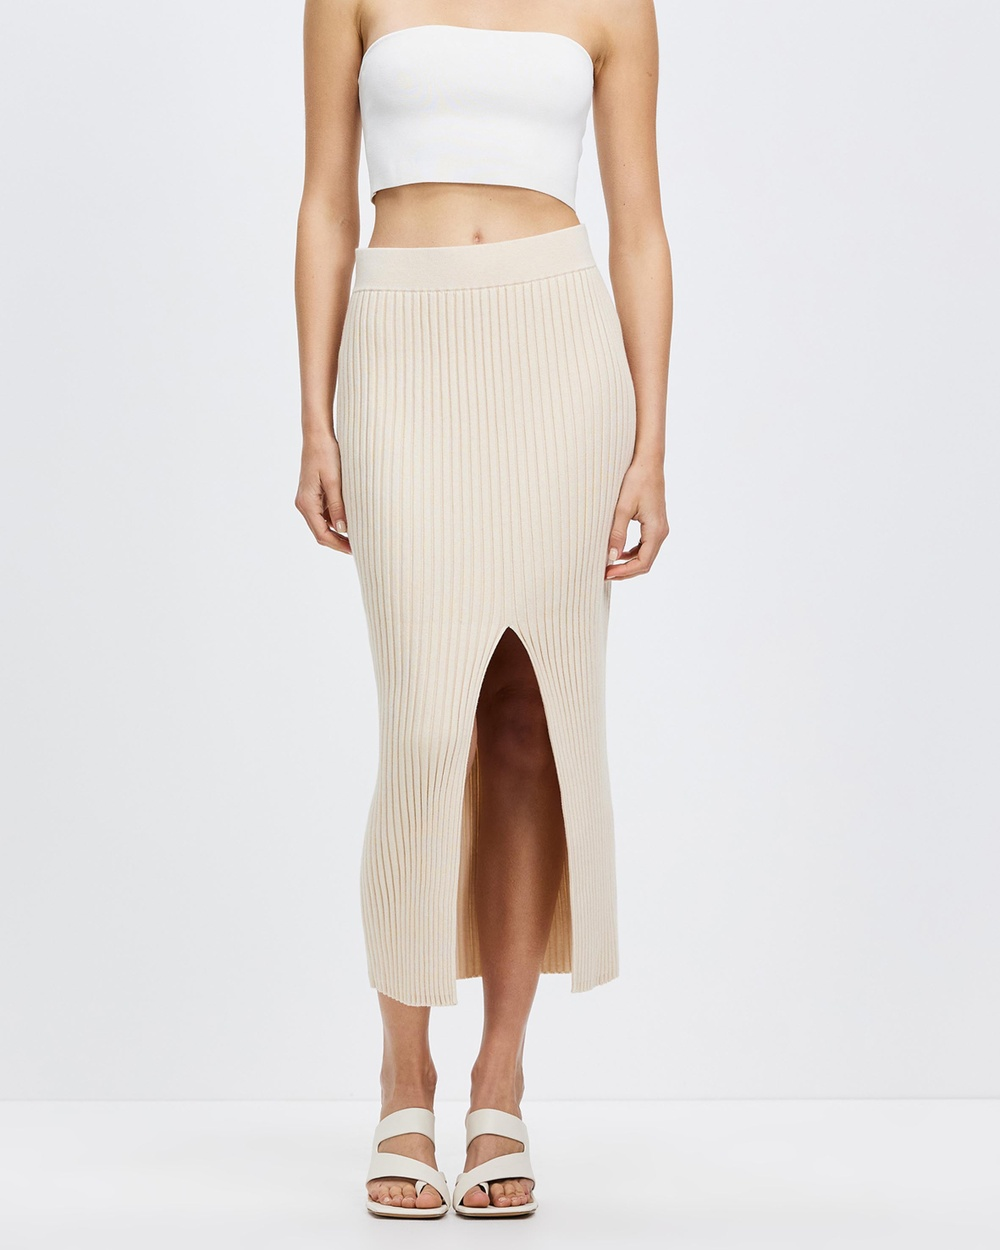 AERE Organic Cotton Blend Ribbed Skirt Pencil skirts Neutral